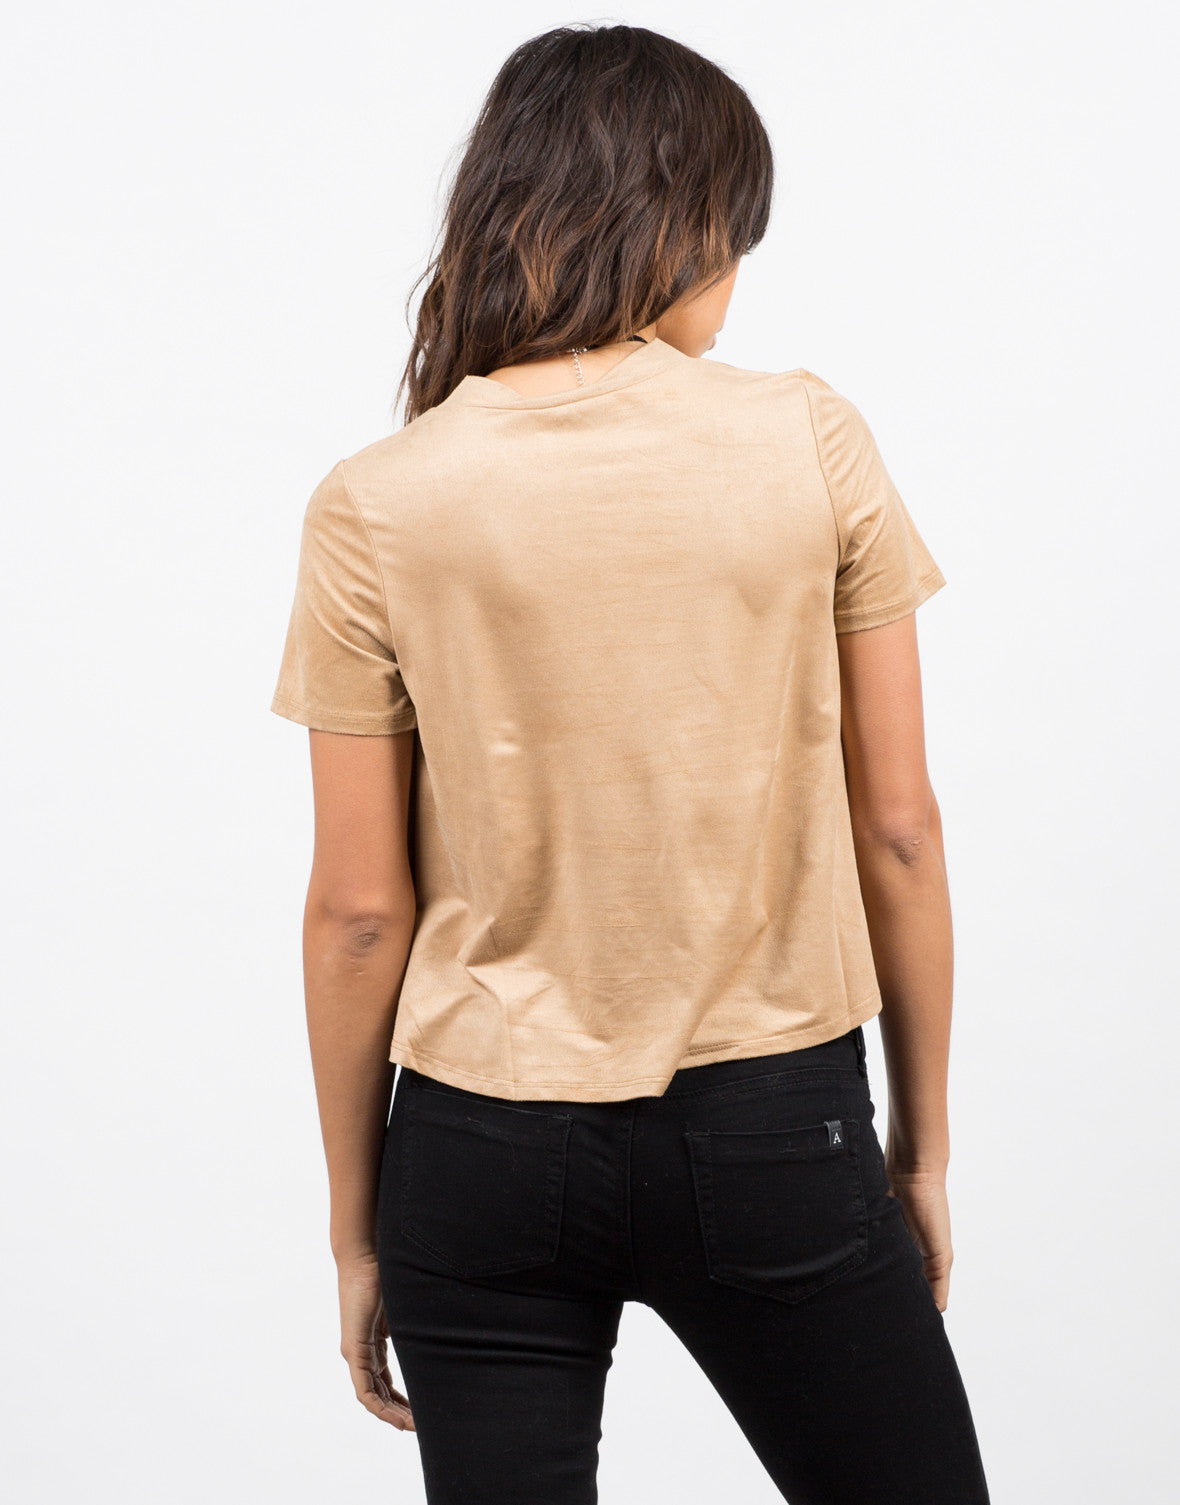 Back View of Boxy Suede Lace Up Tee